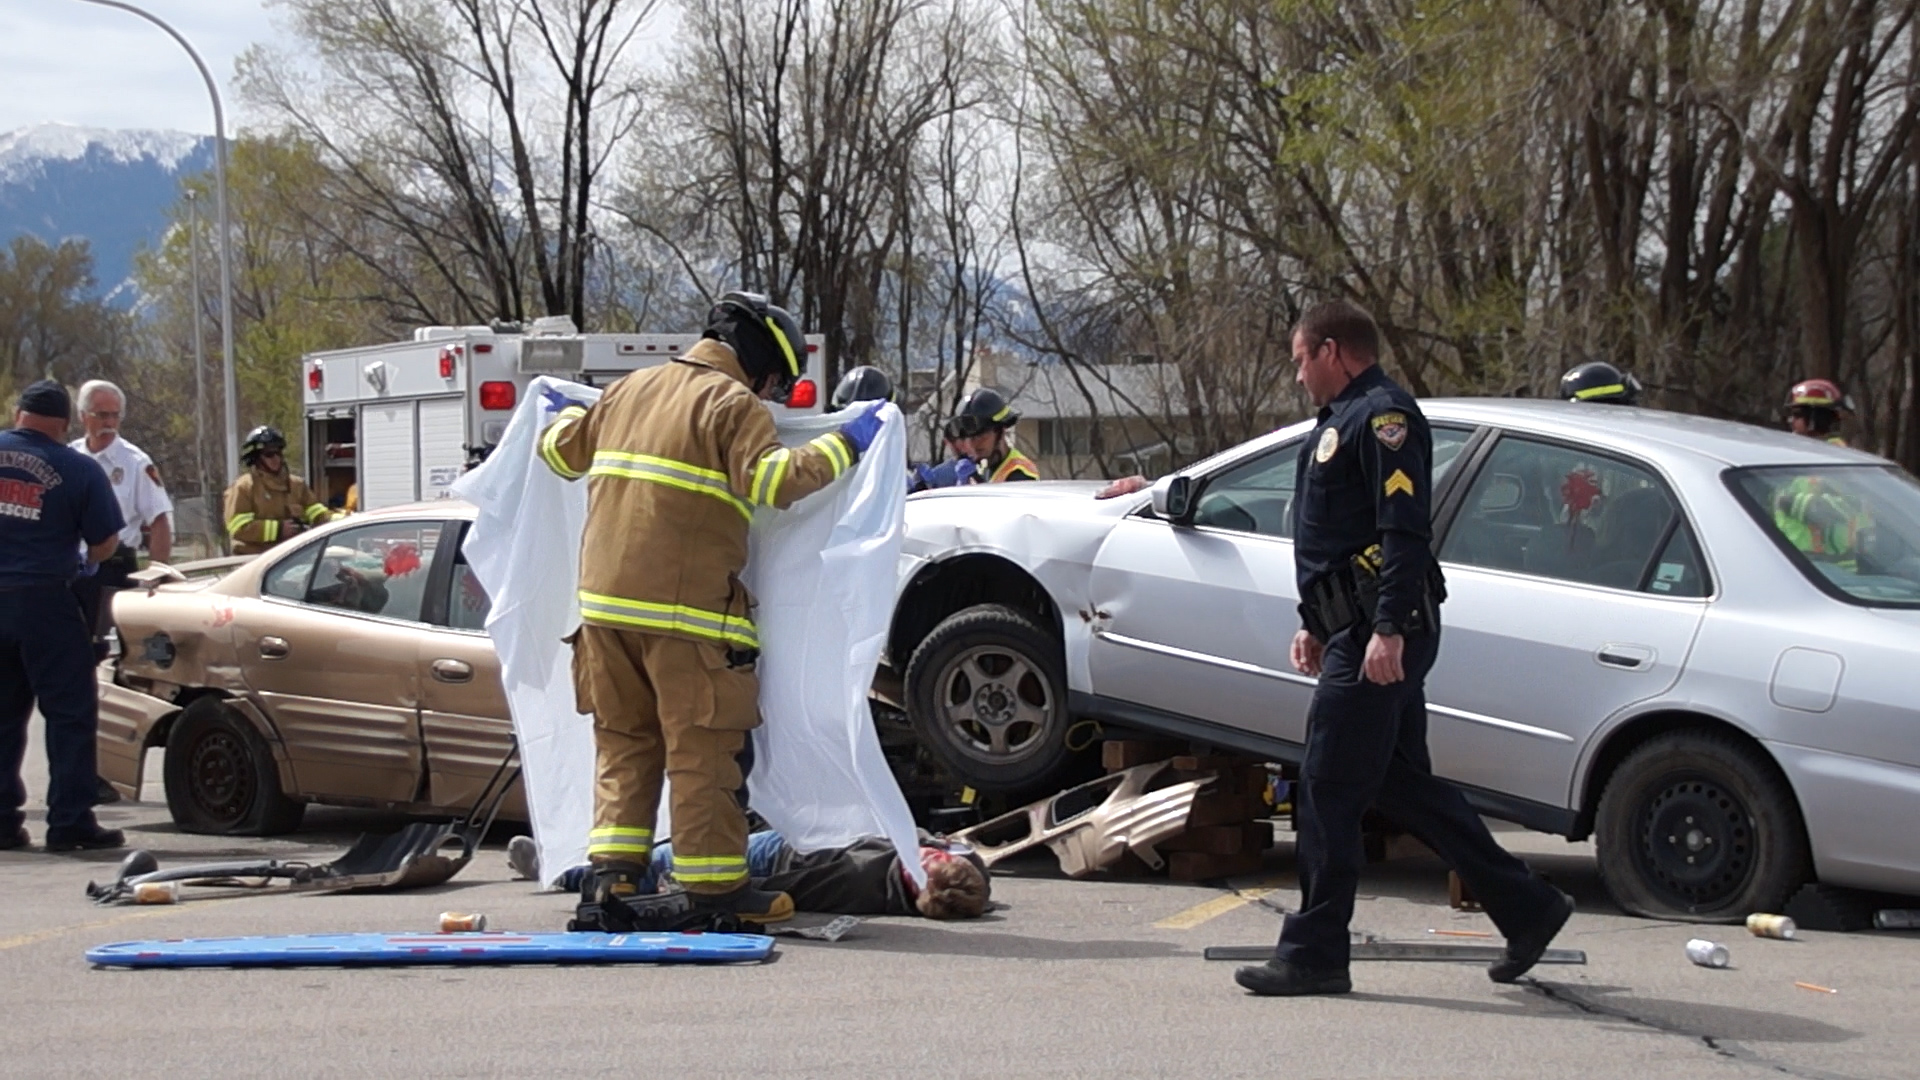 EMT prepares to cover dead body with sheet in mock crash. UHP, Springville PD, SPringville Fire and Rescue, Utah County Sheriff's Office and Lifeflight teamed up to conduct a mock crash at Springville High School on April 10th.